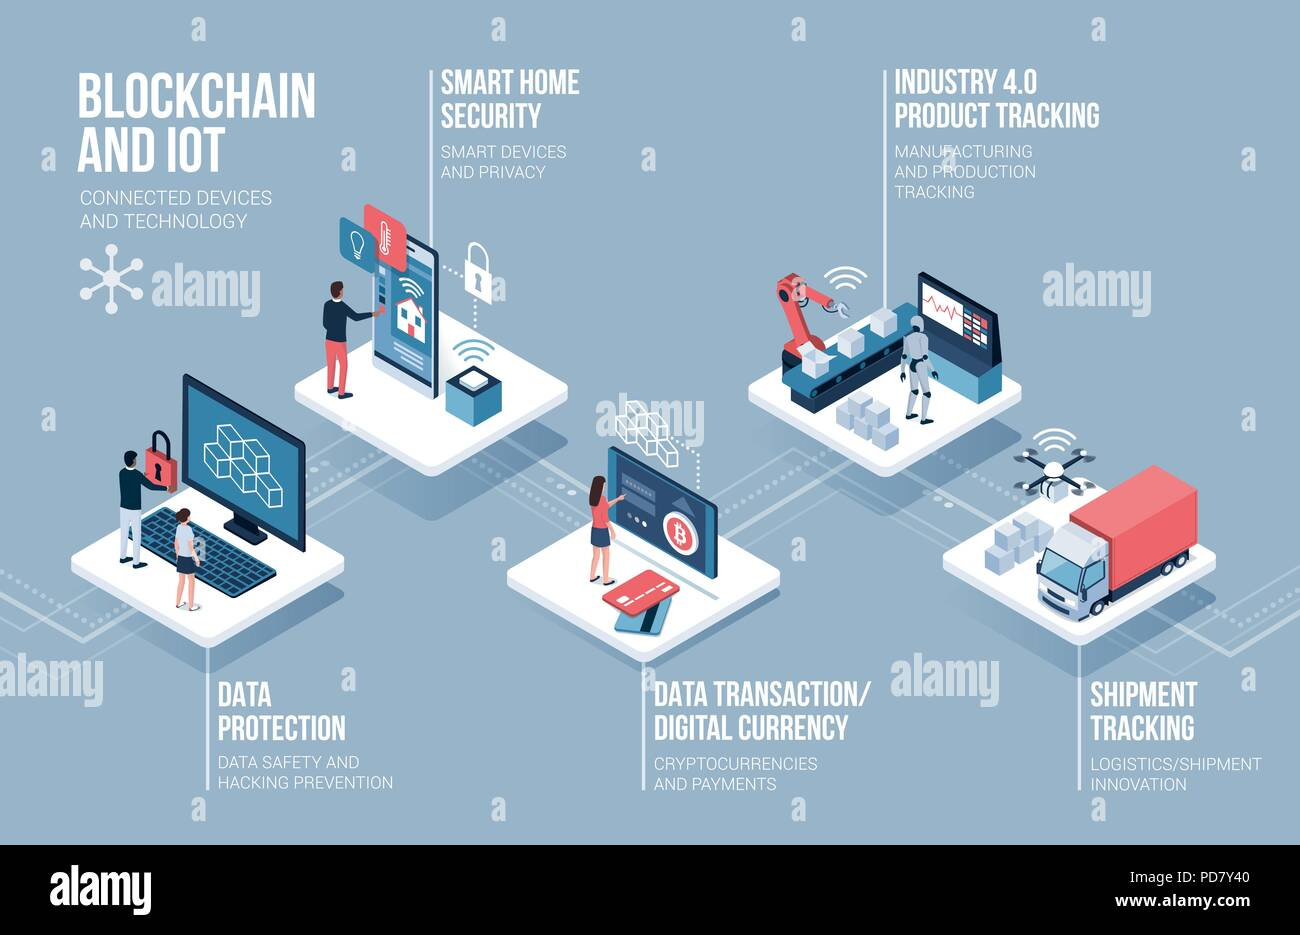 Blockchain and internet of things infographic: data security, smart home security, cryptocurrencies, industry 4.0 and delivery tracking concept - Stock Vector